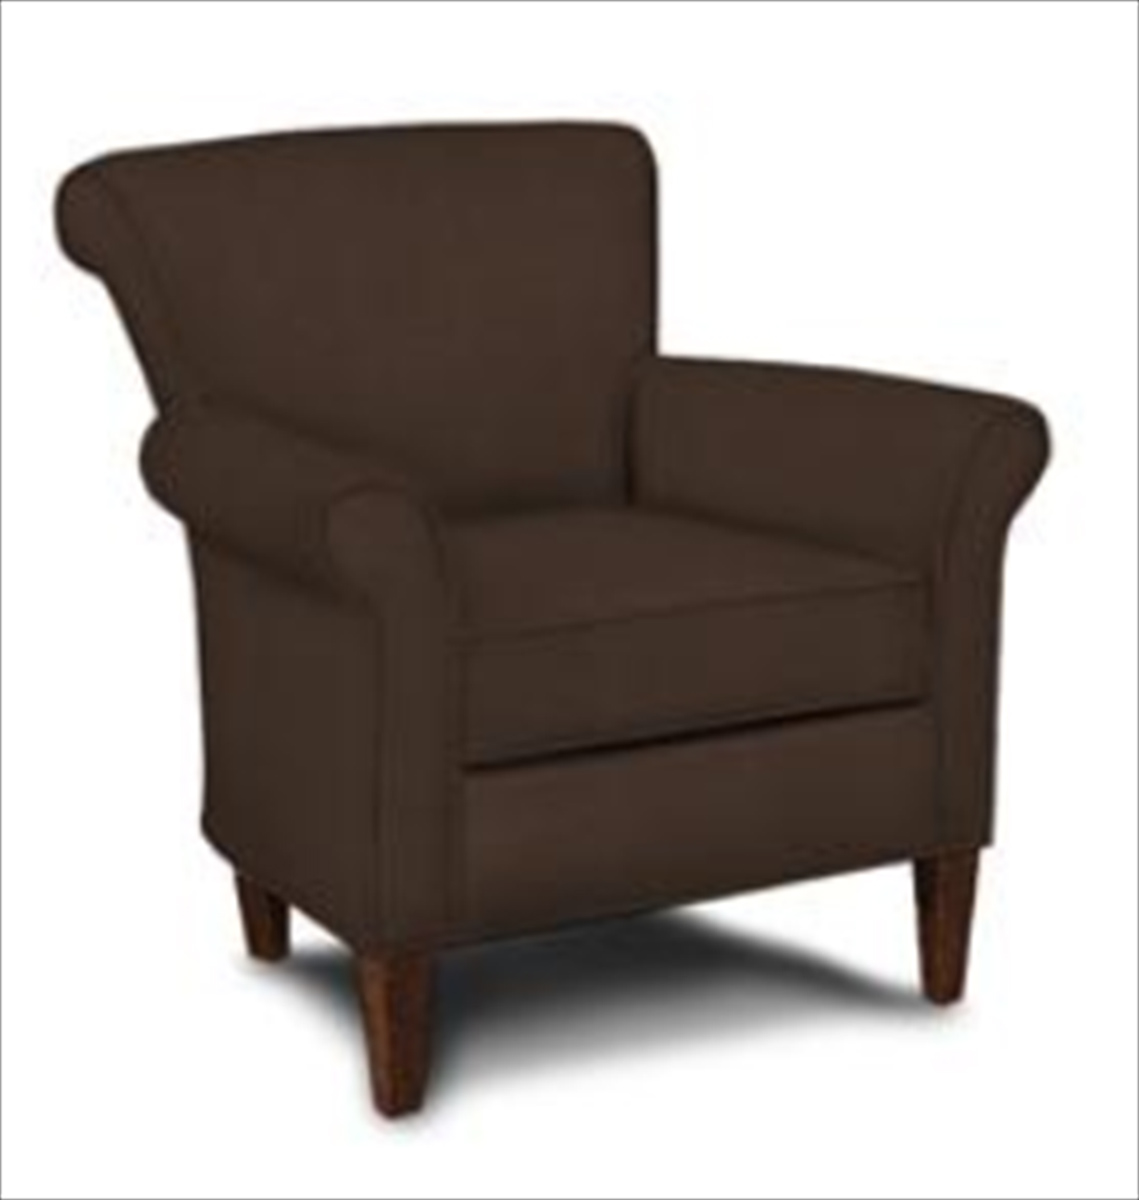 Klaussner Louise Chair - Willow Java